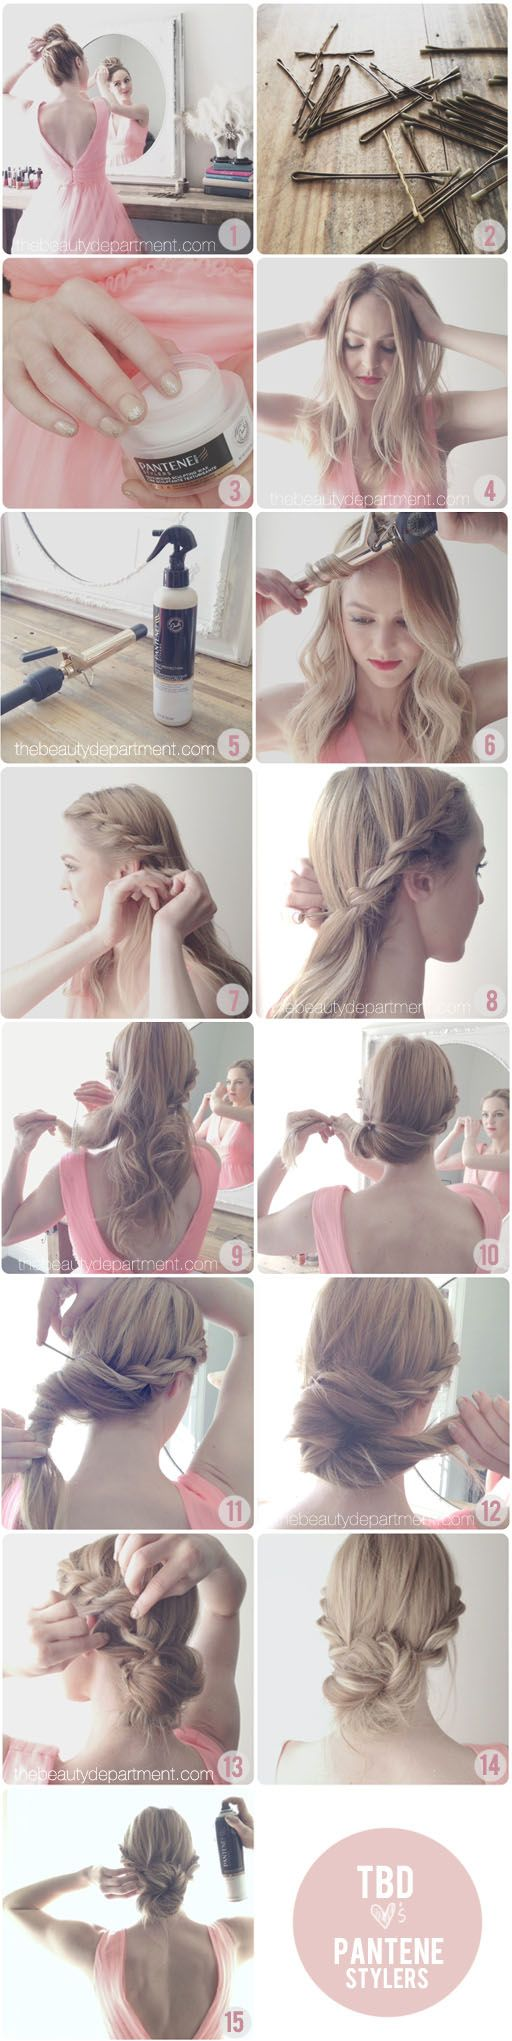 ROPE-BRAID-CHIGNON   #hair tutorials #hairstyle tutorials